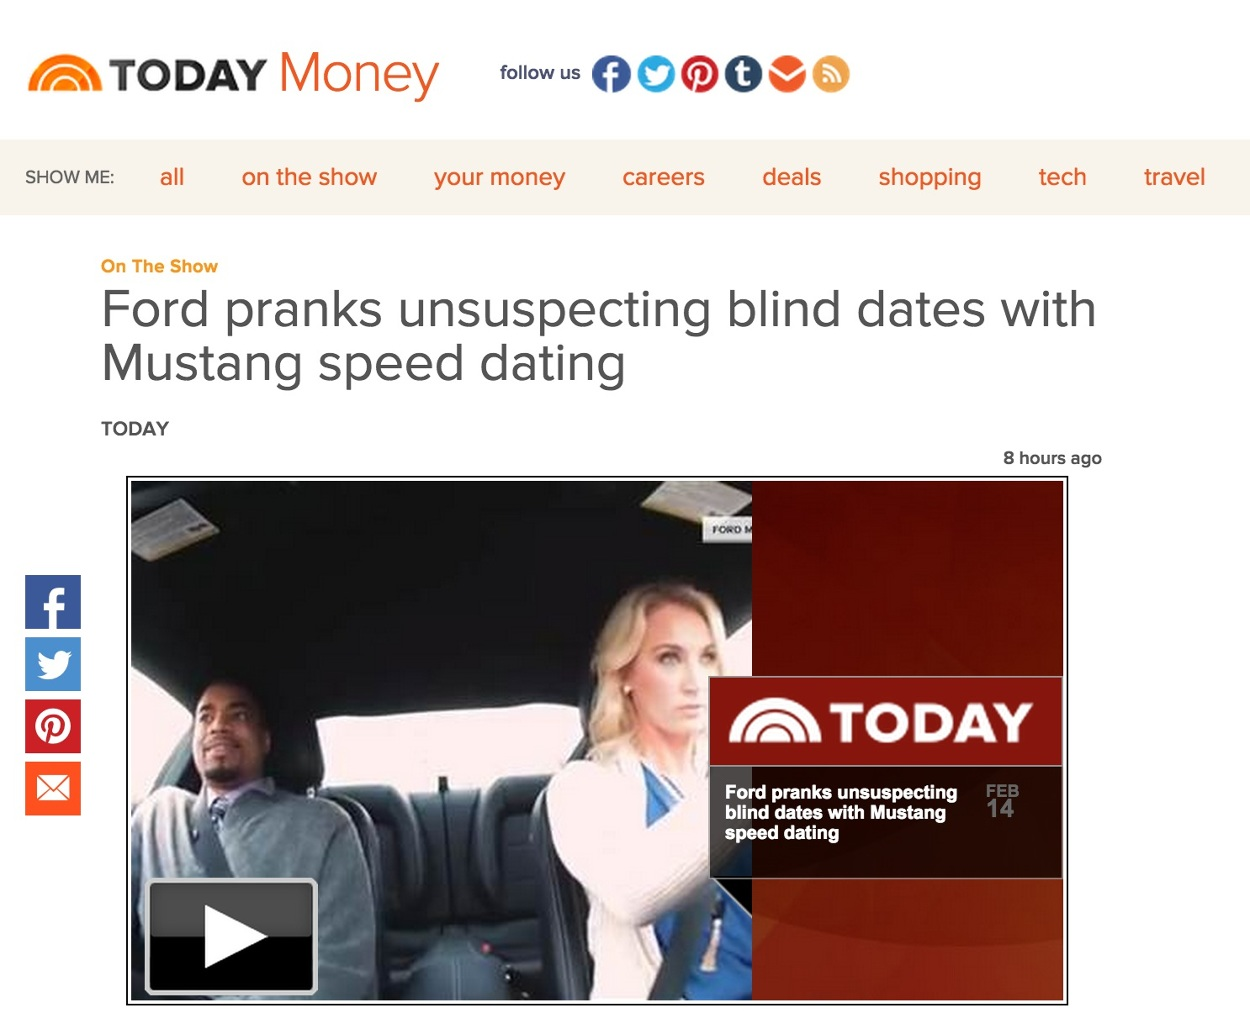 speed dating mustang youtube